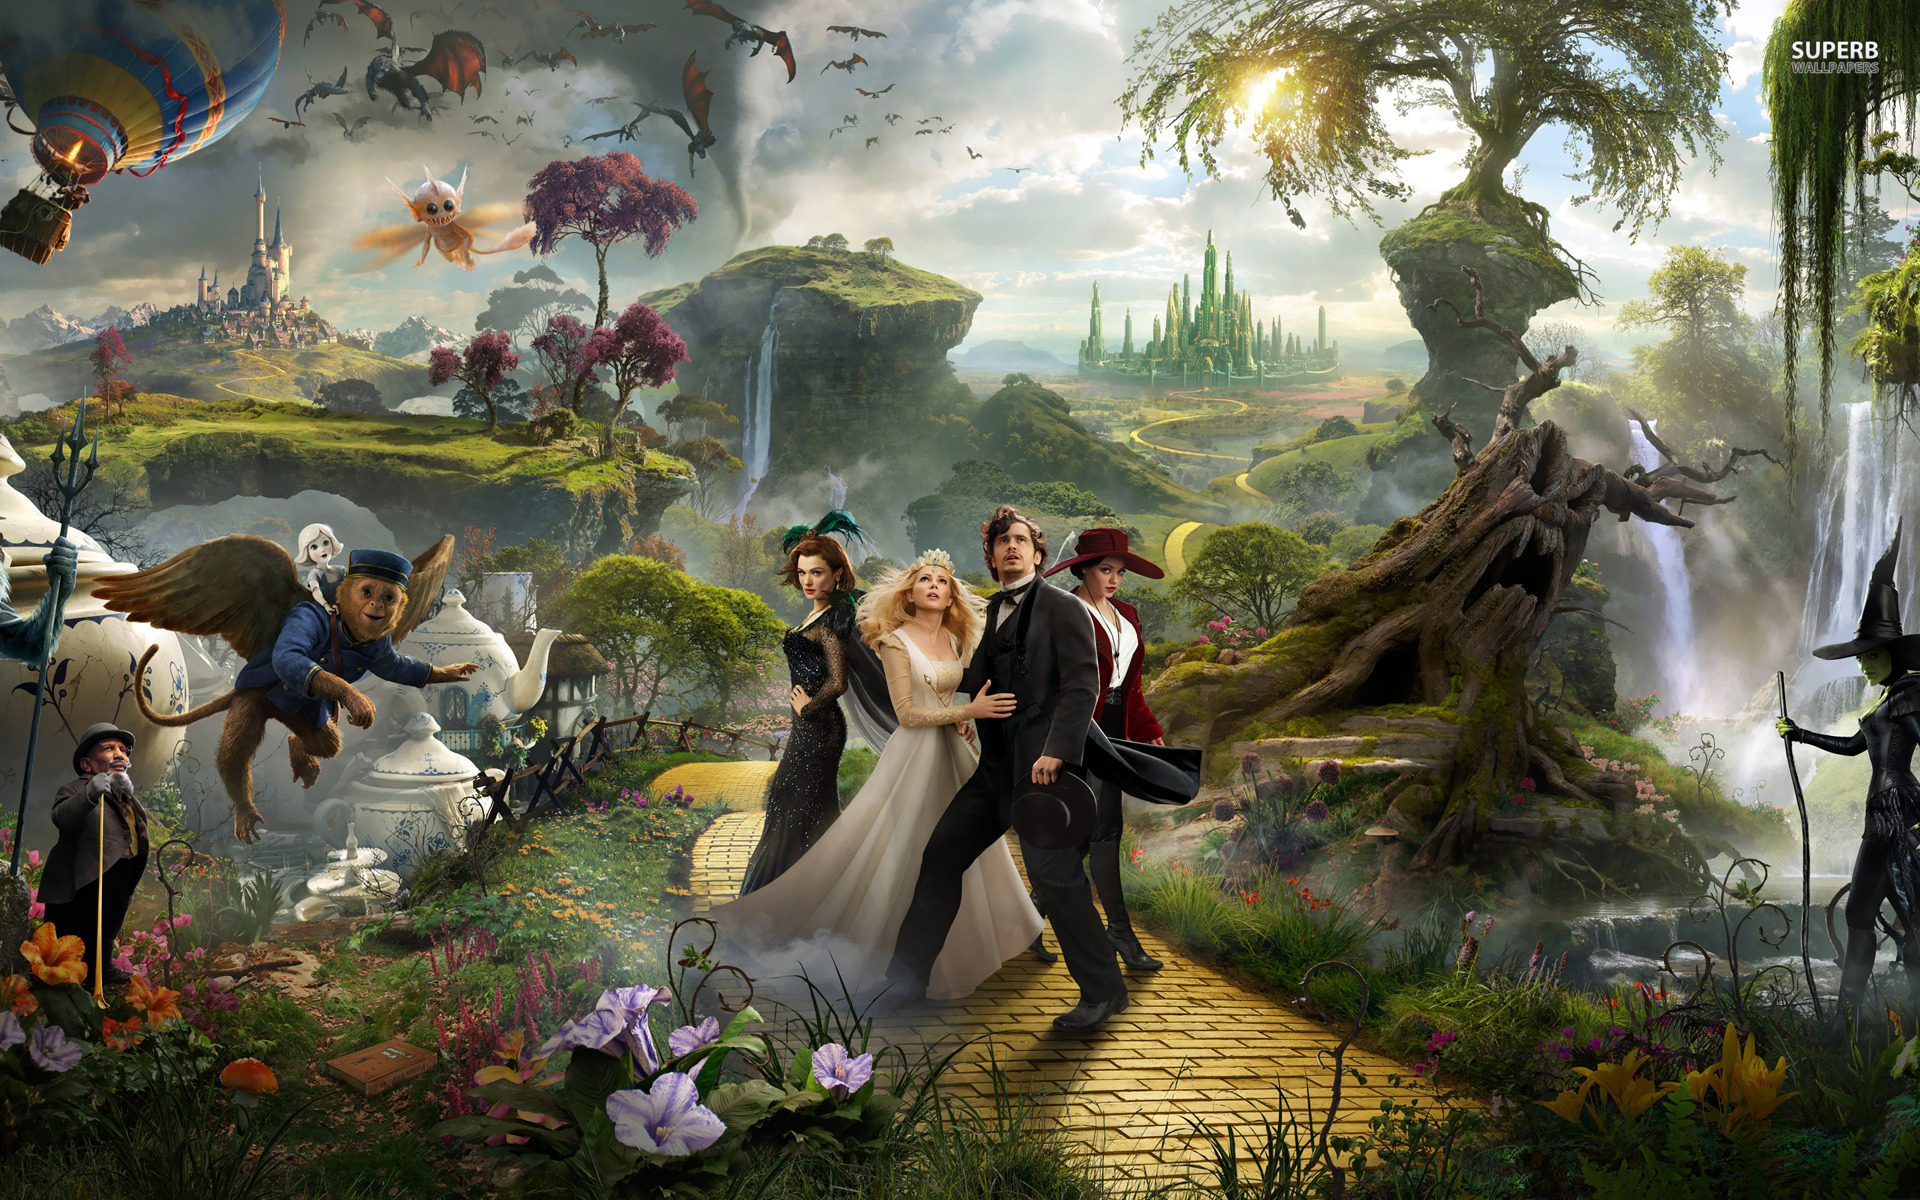 Oz The Great And Powerful Backgrounds, Compatible - PC, Mobile, Gadgets| 1920x1200 px